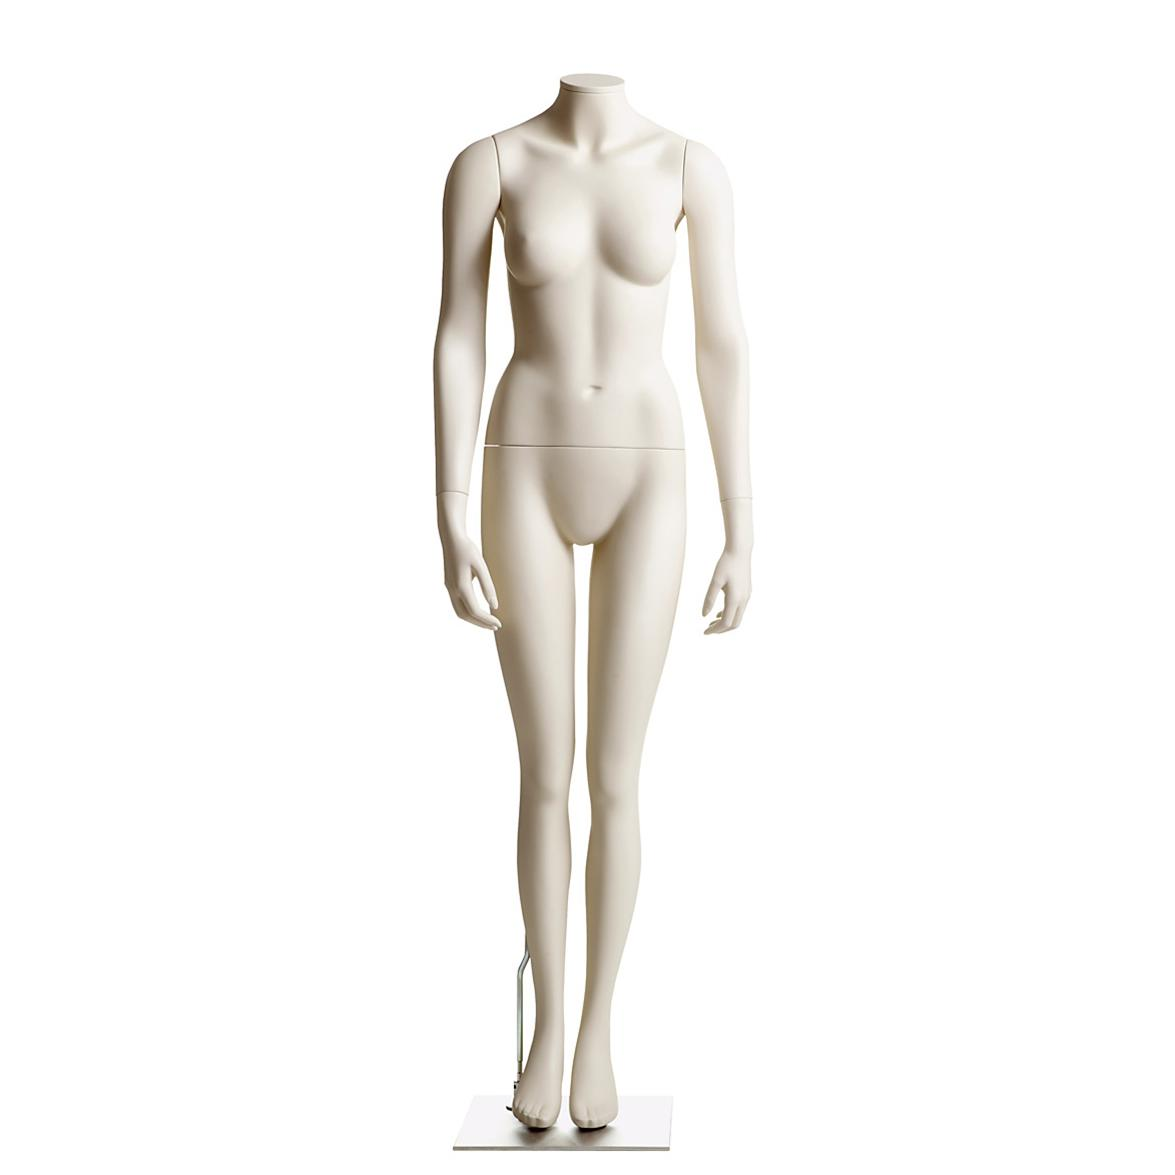 Female Headless Mannequin- Arms at Side, Legs Together